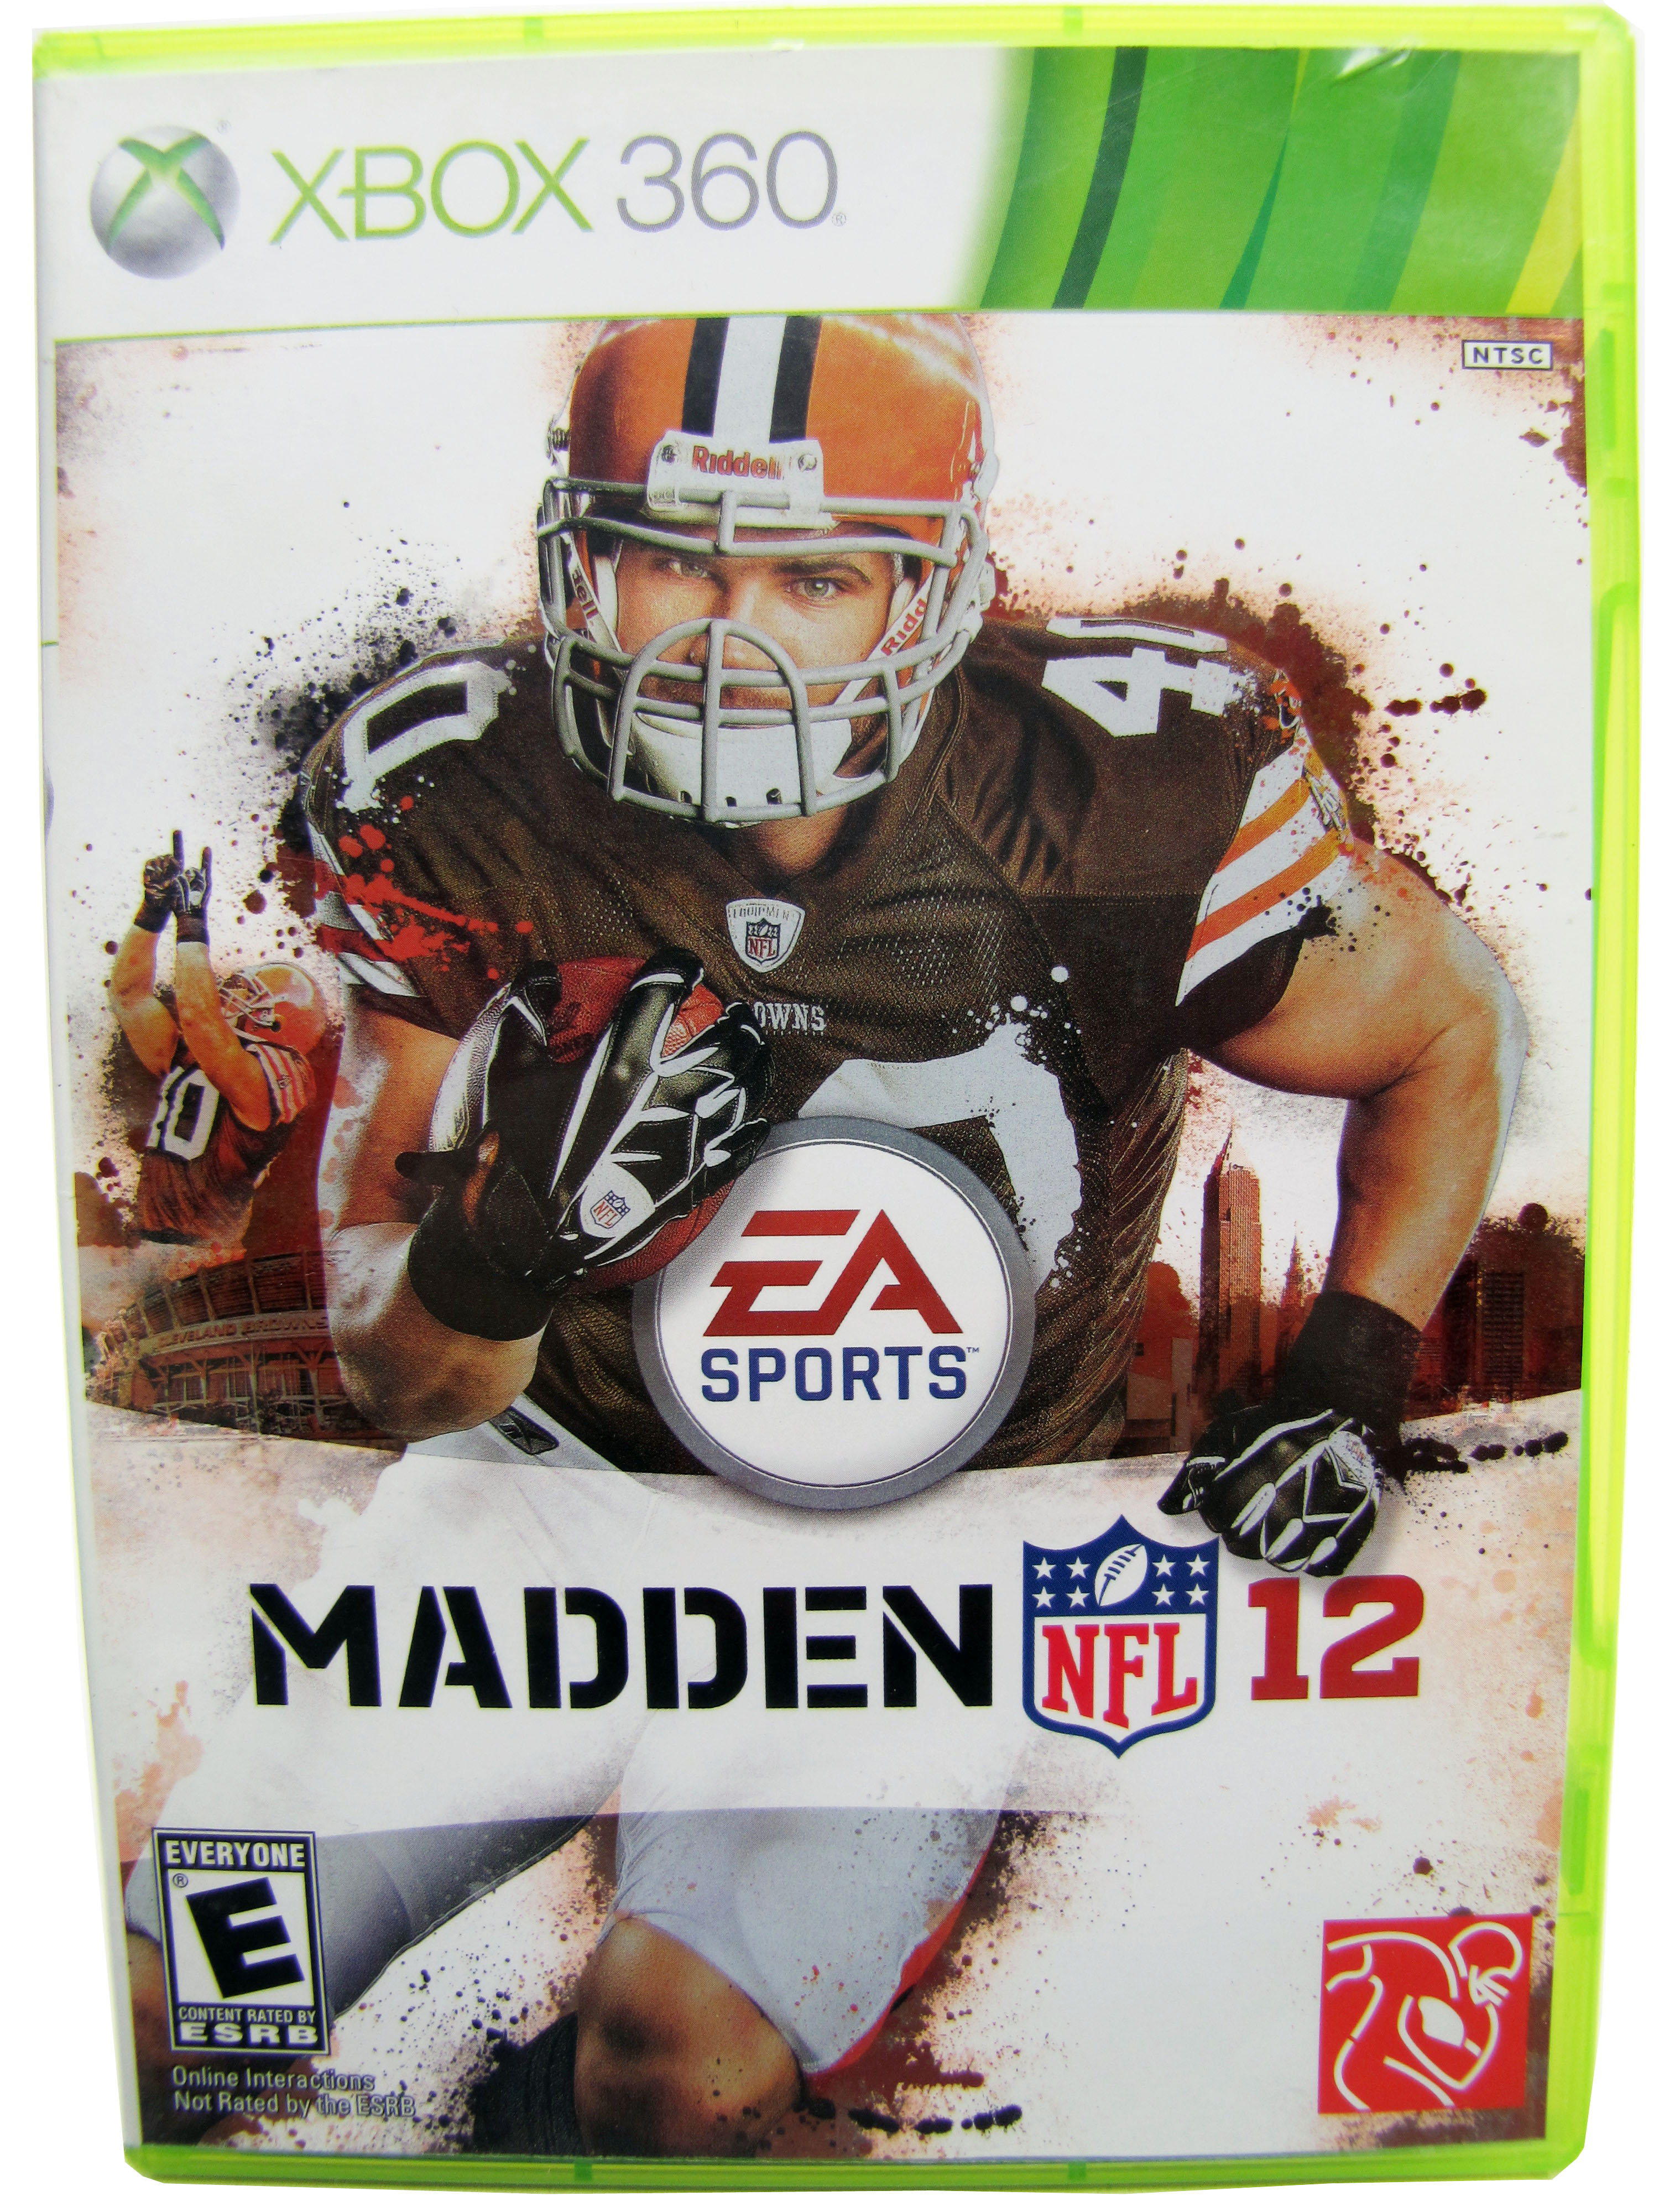 XBOX 360 Madden NFL '12 Complete - 2011